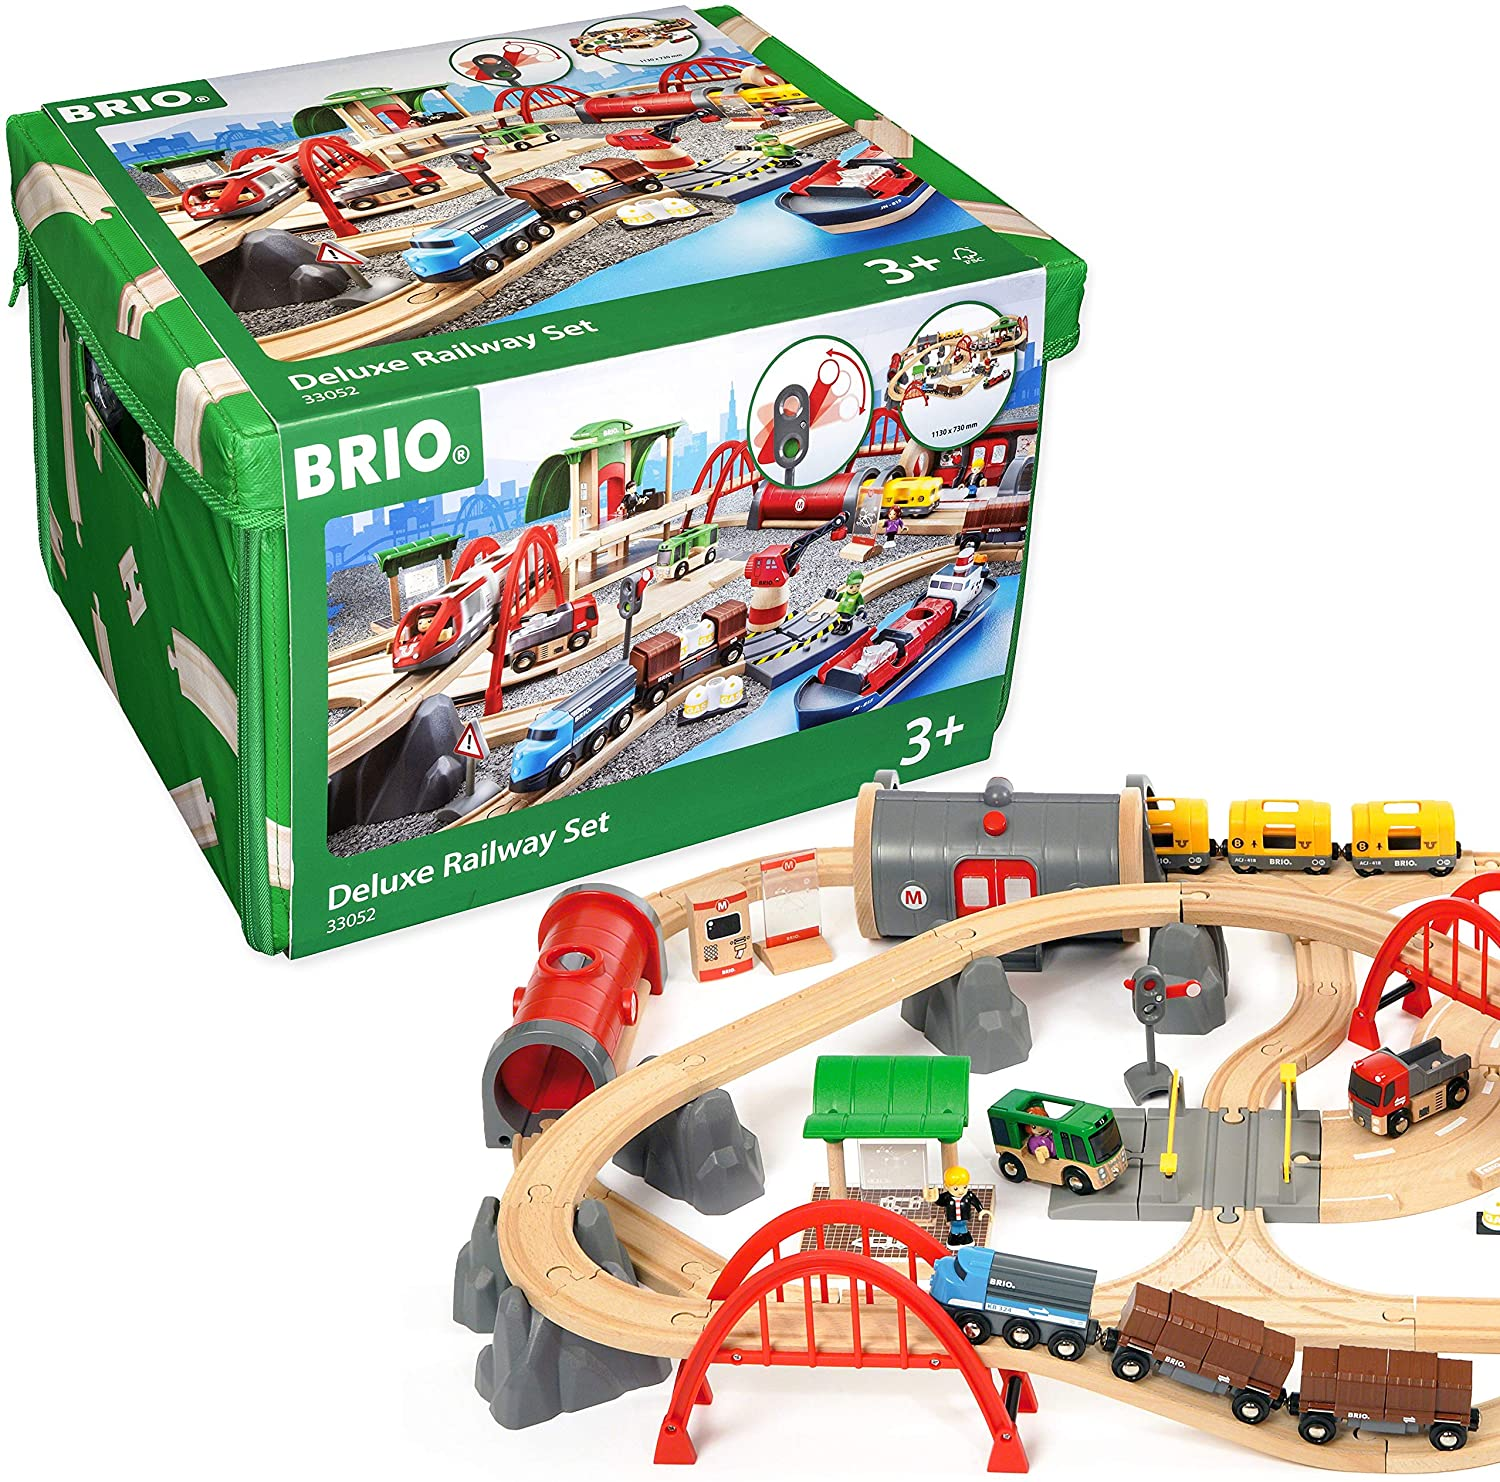 Amazon Com Brio World 33052 Deluxe Railway Set Wooden Toy Train Set For Kids Age 3 And Up Green Toys Games